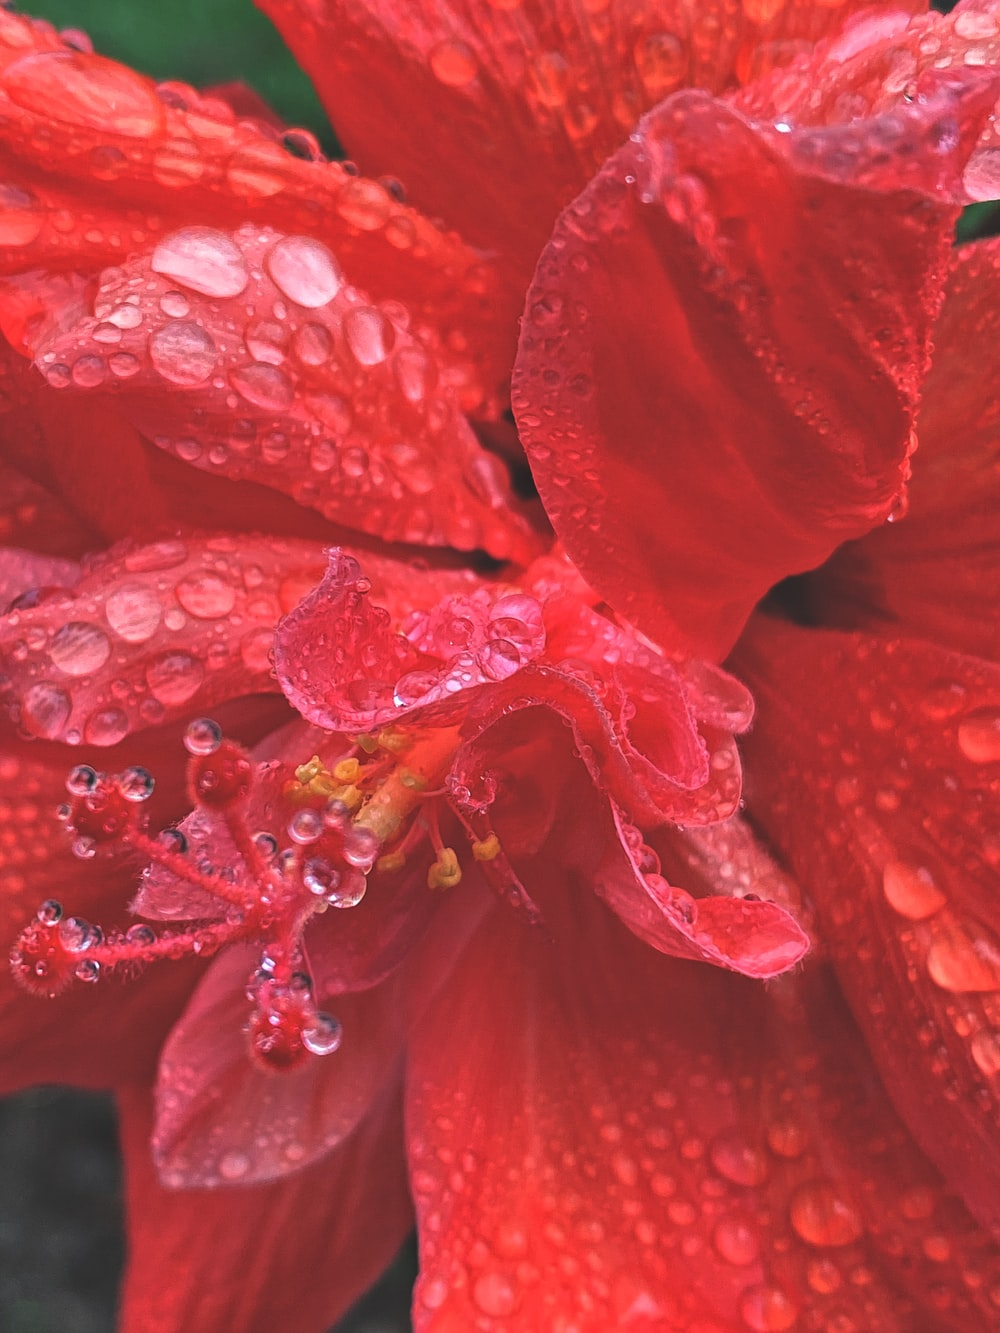 red hibiscus in bloom with dew drops